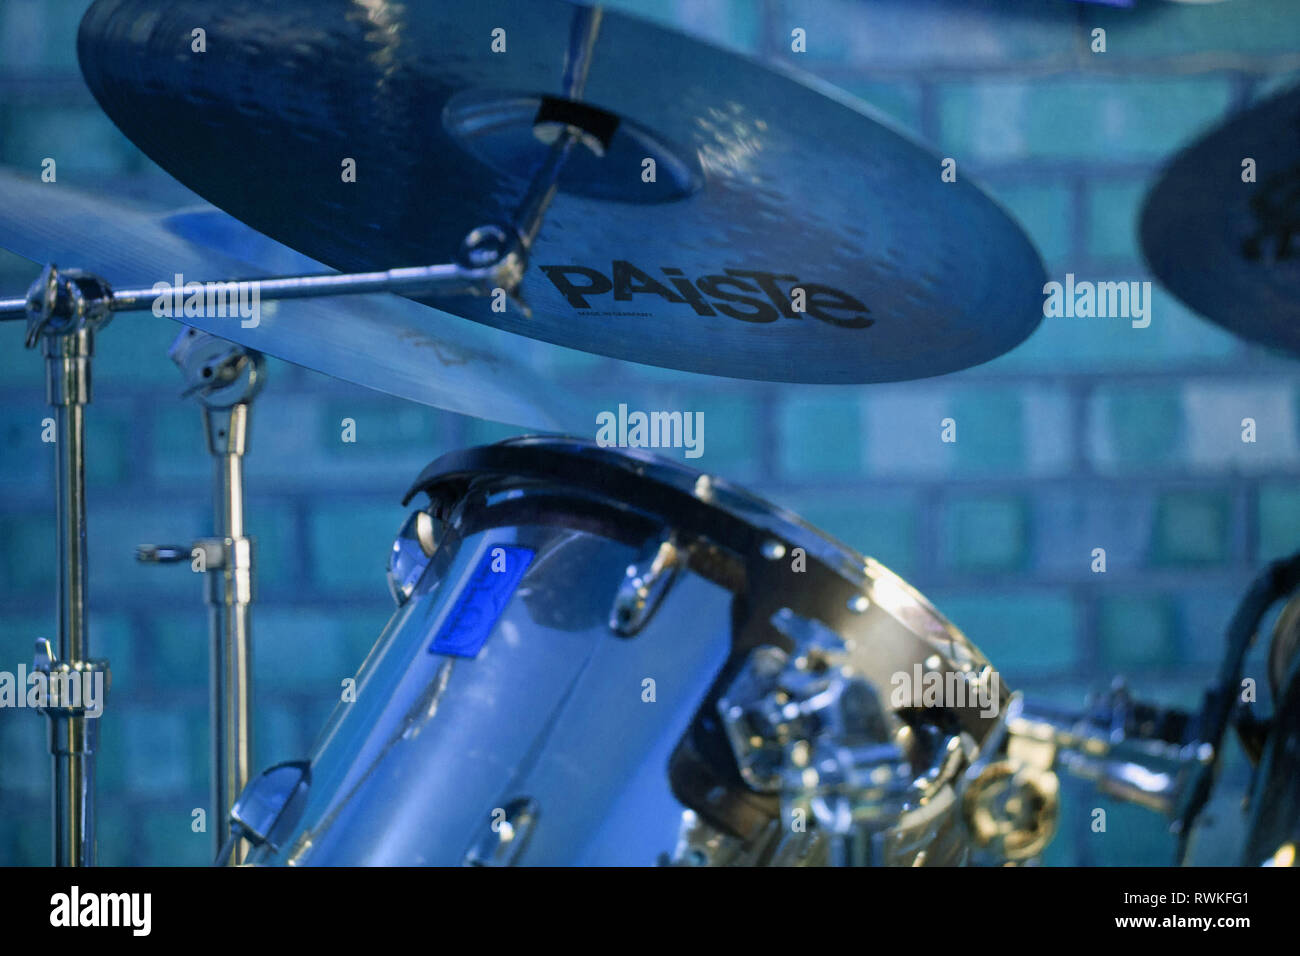 Part of a drumkit, blue tinted drum kit, Paiste cymbals Stock Photo